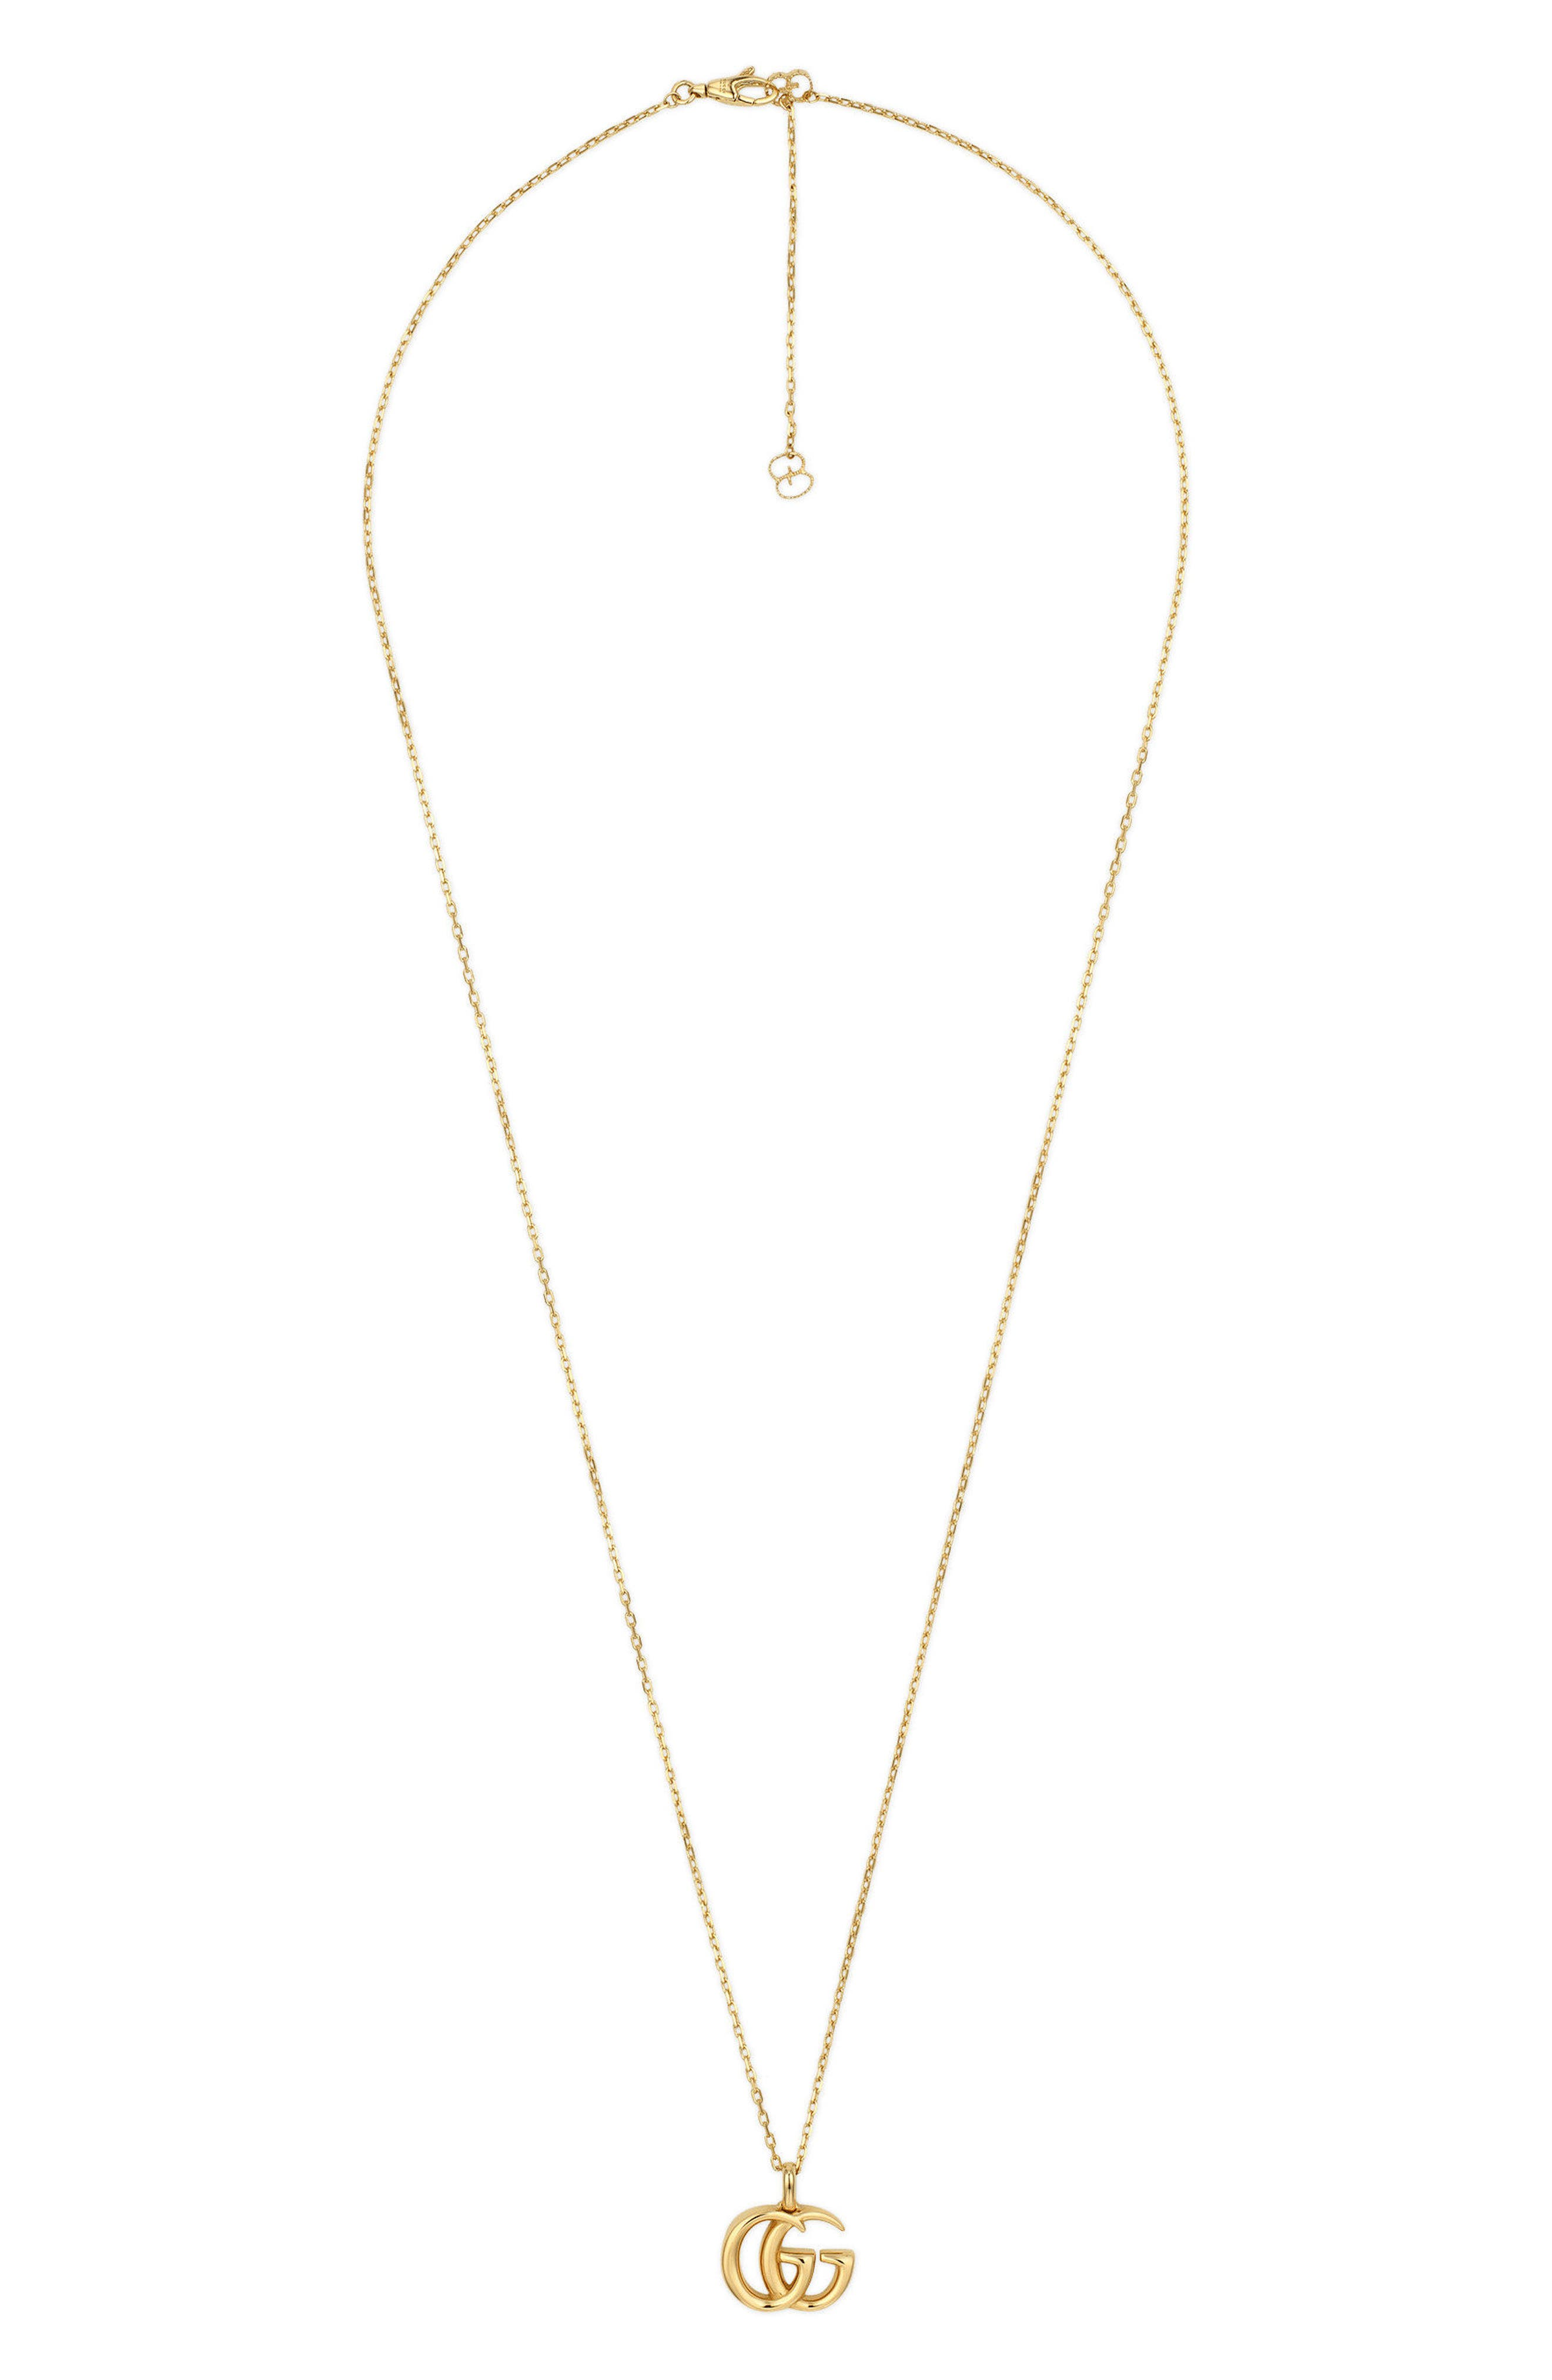 Double-G Pendant Necklace,                         Main,                         color, YELLOW GOLD